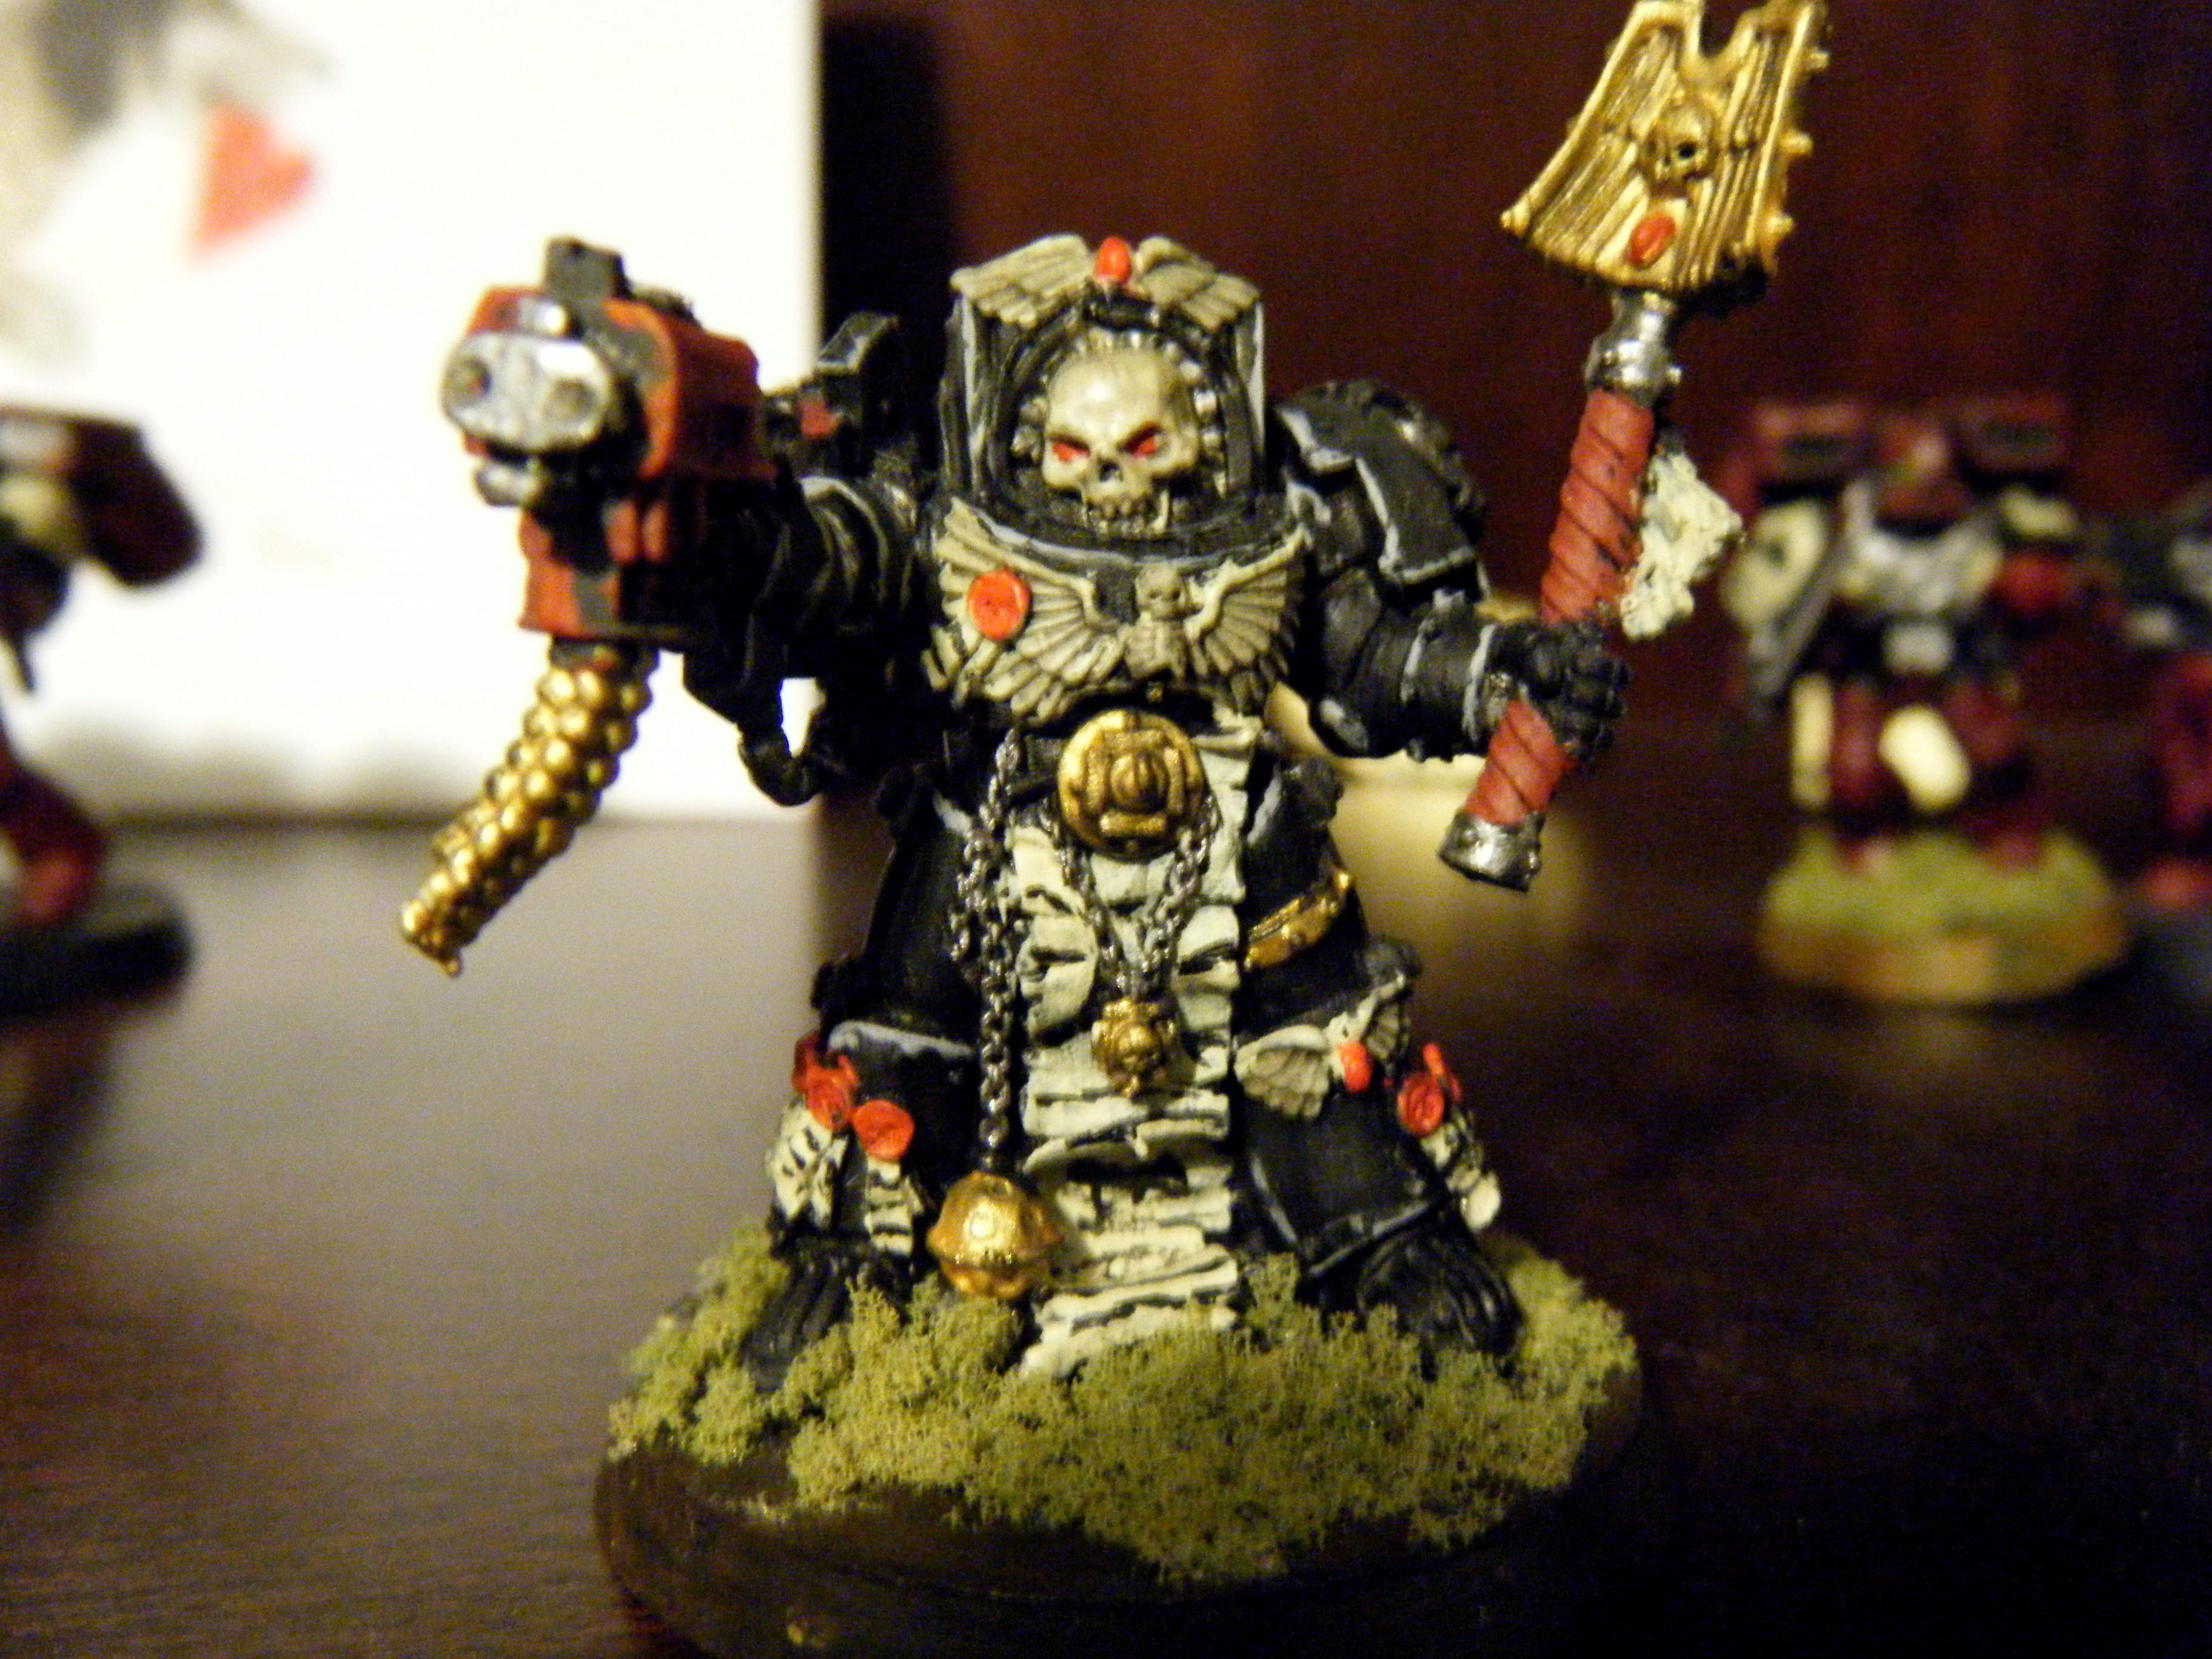 Blood Ravens, Bone, Chaplain, Crozius, Headquarters, Highlighting, Space Marines, Storm Bolter, Terminator Armor, W40k, Warhammer 40,000